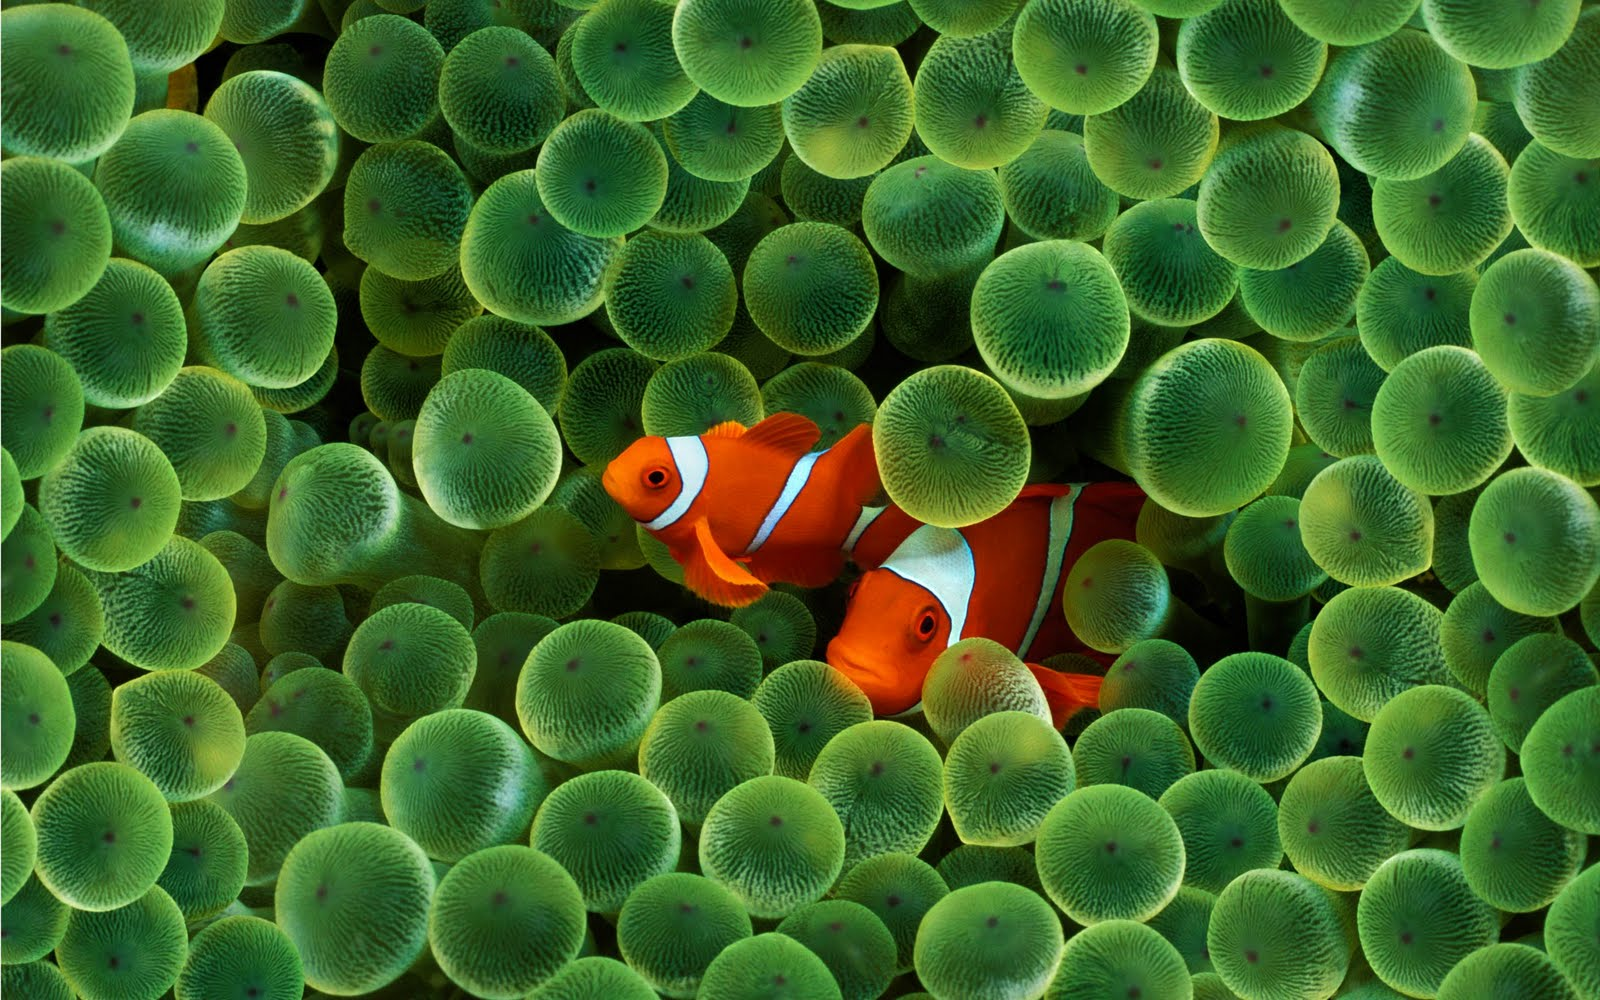 http://2.bp.blogspot.com/_z2vhQMYW11I/THXb-0aLFKI/AAAAAAAAAGE/UkxG3l10WF8/s1600/clown-fish-wallpapers_5182_2560x1600.jpg